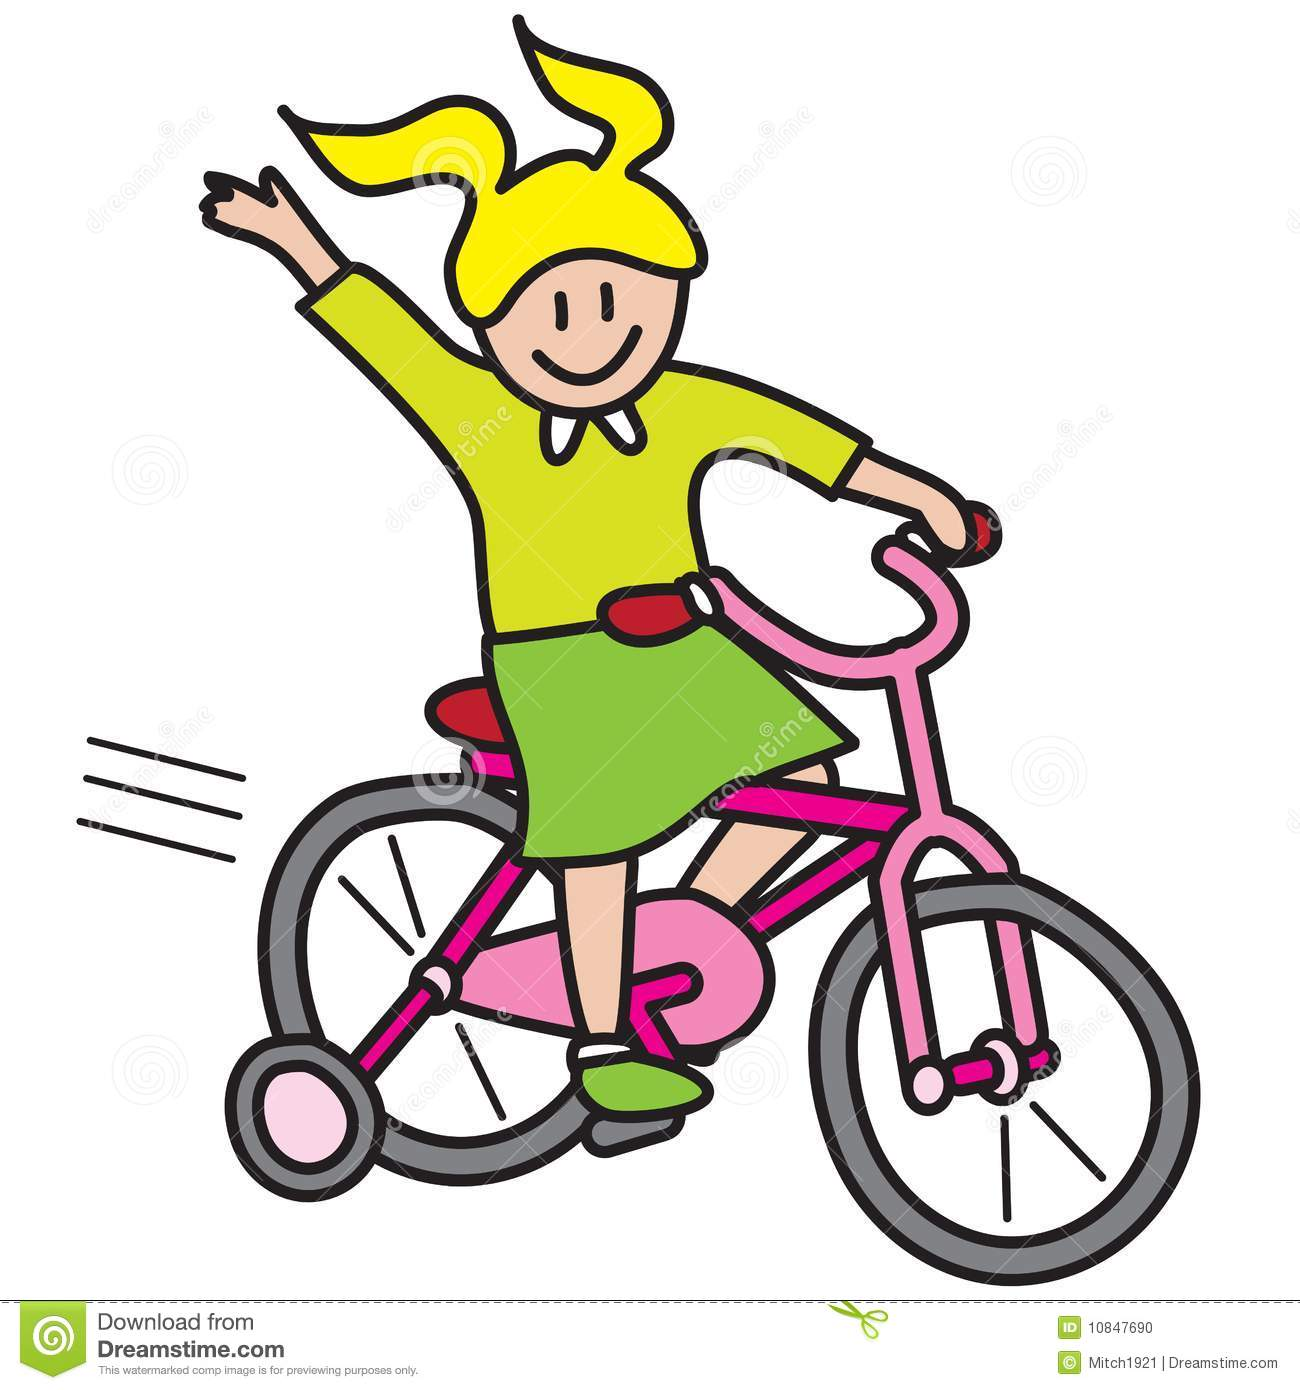 Cartoon cliparts free download. Biking clipart tricycle